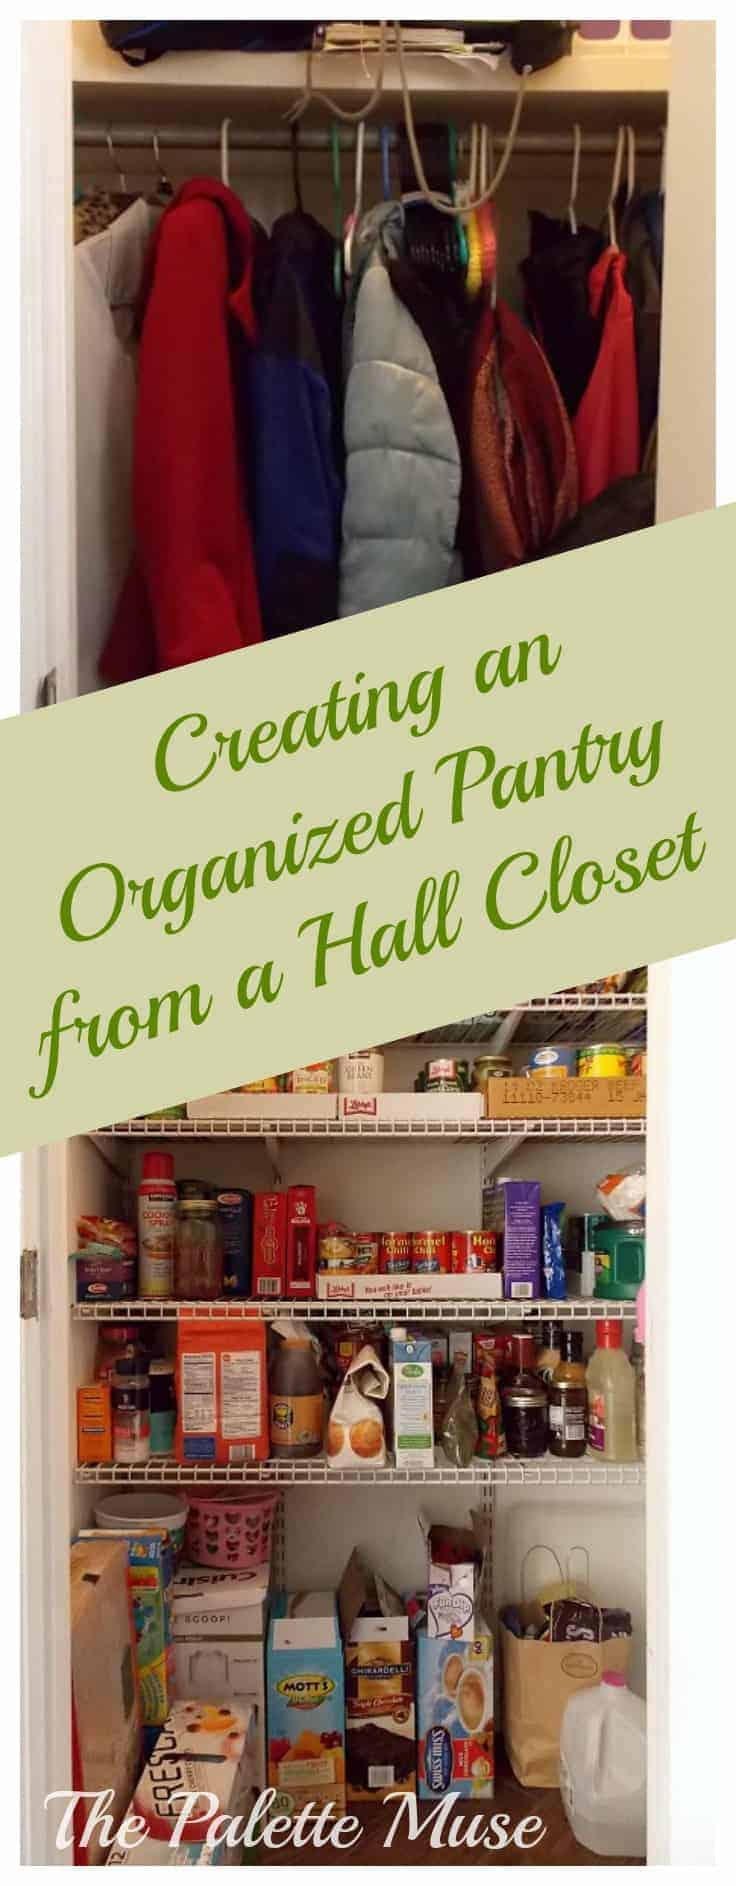 Pantry Organization On Thepalettemuse.com